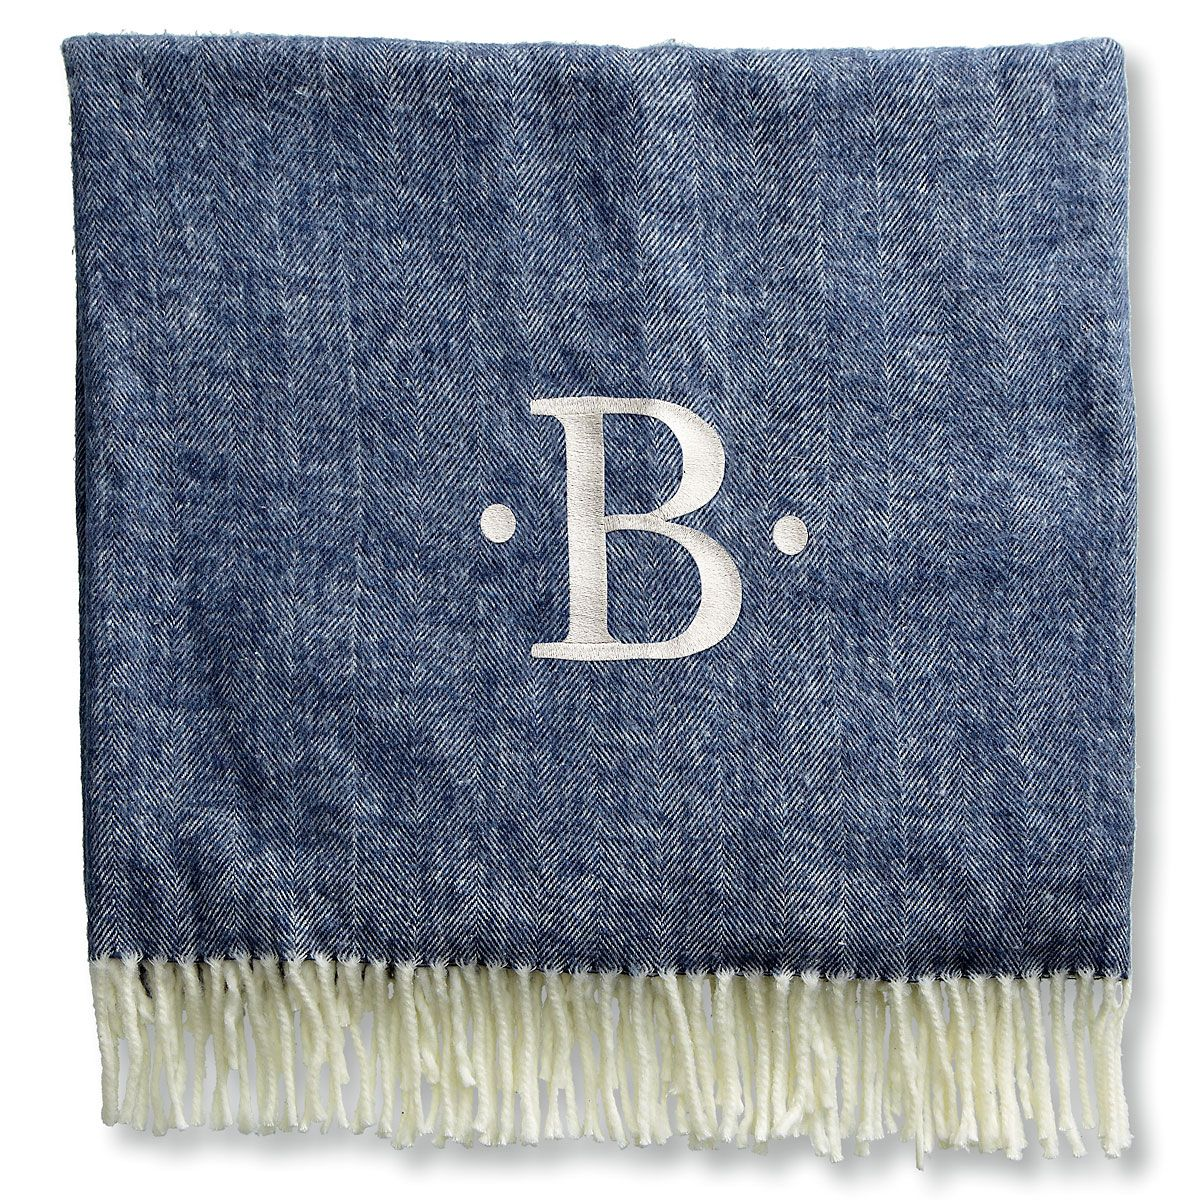 Personalized Blanket with Dots and Initial-Navy-816105C